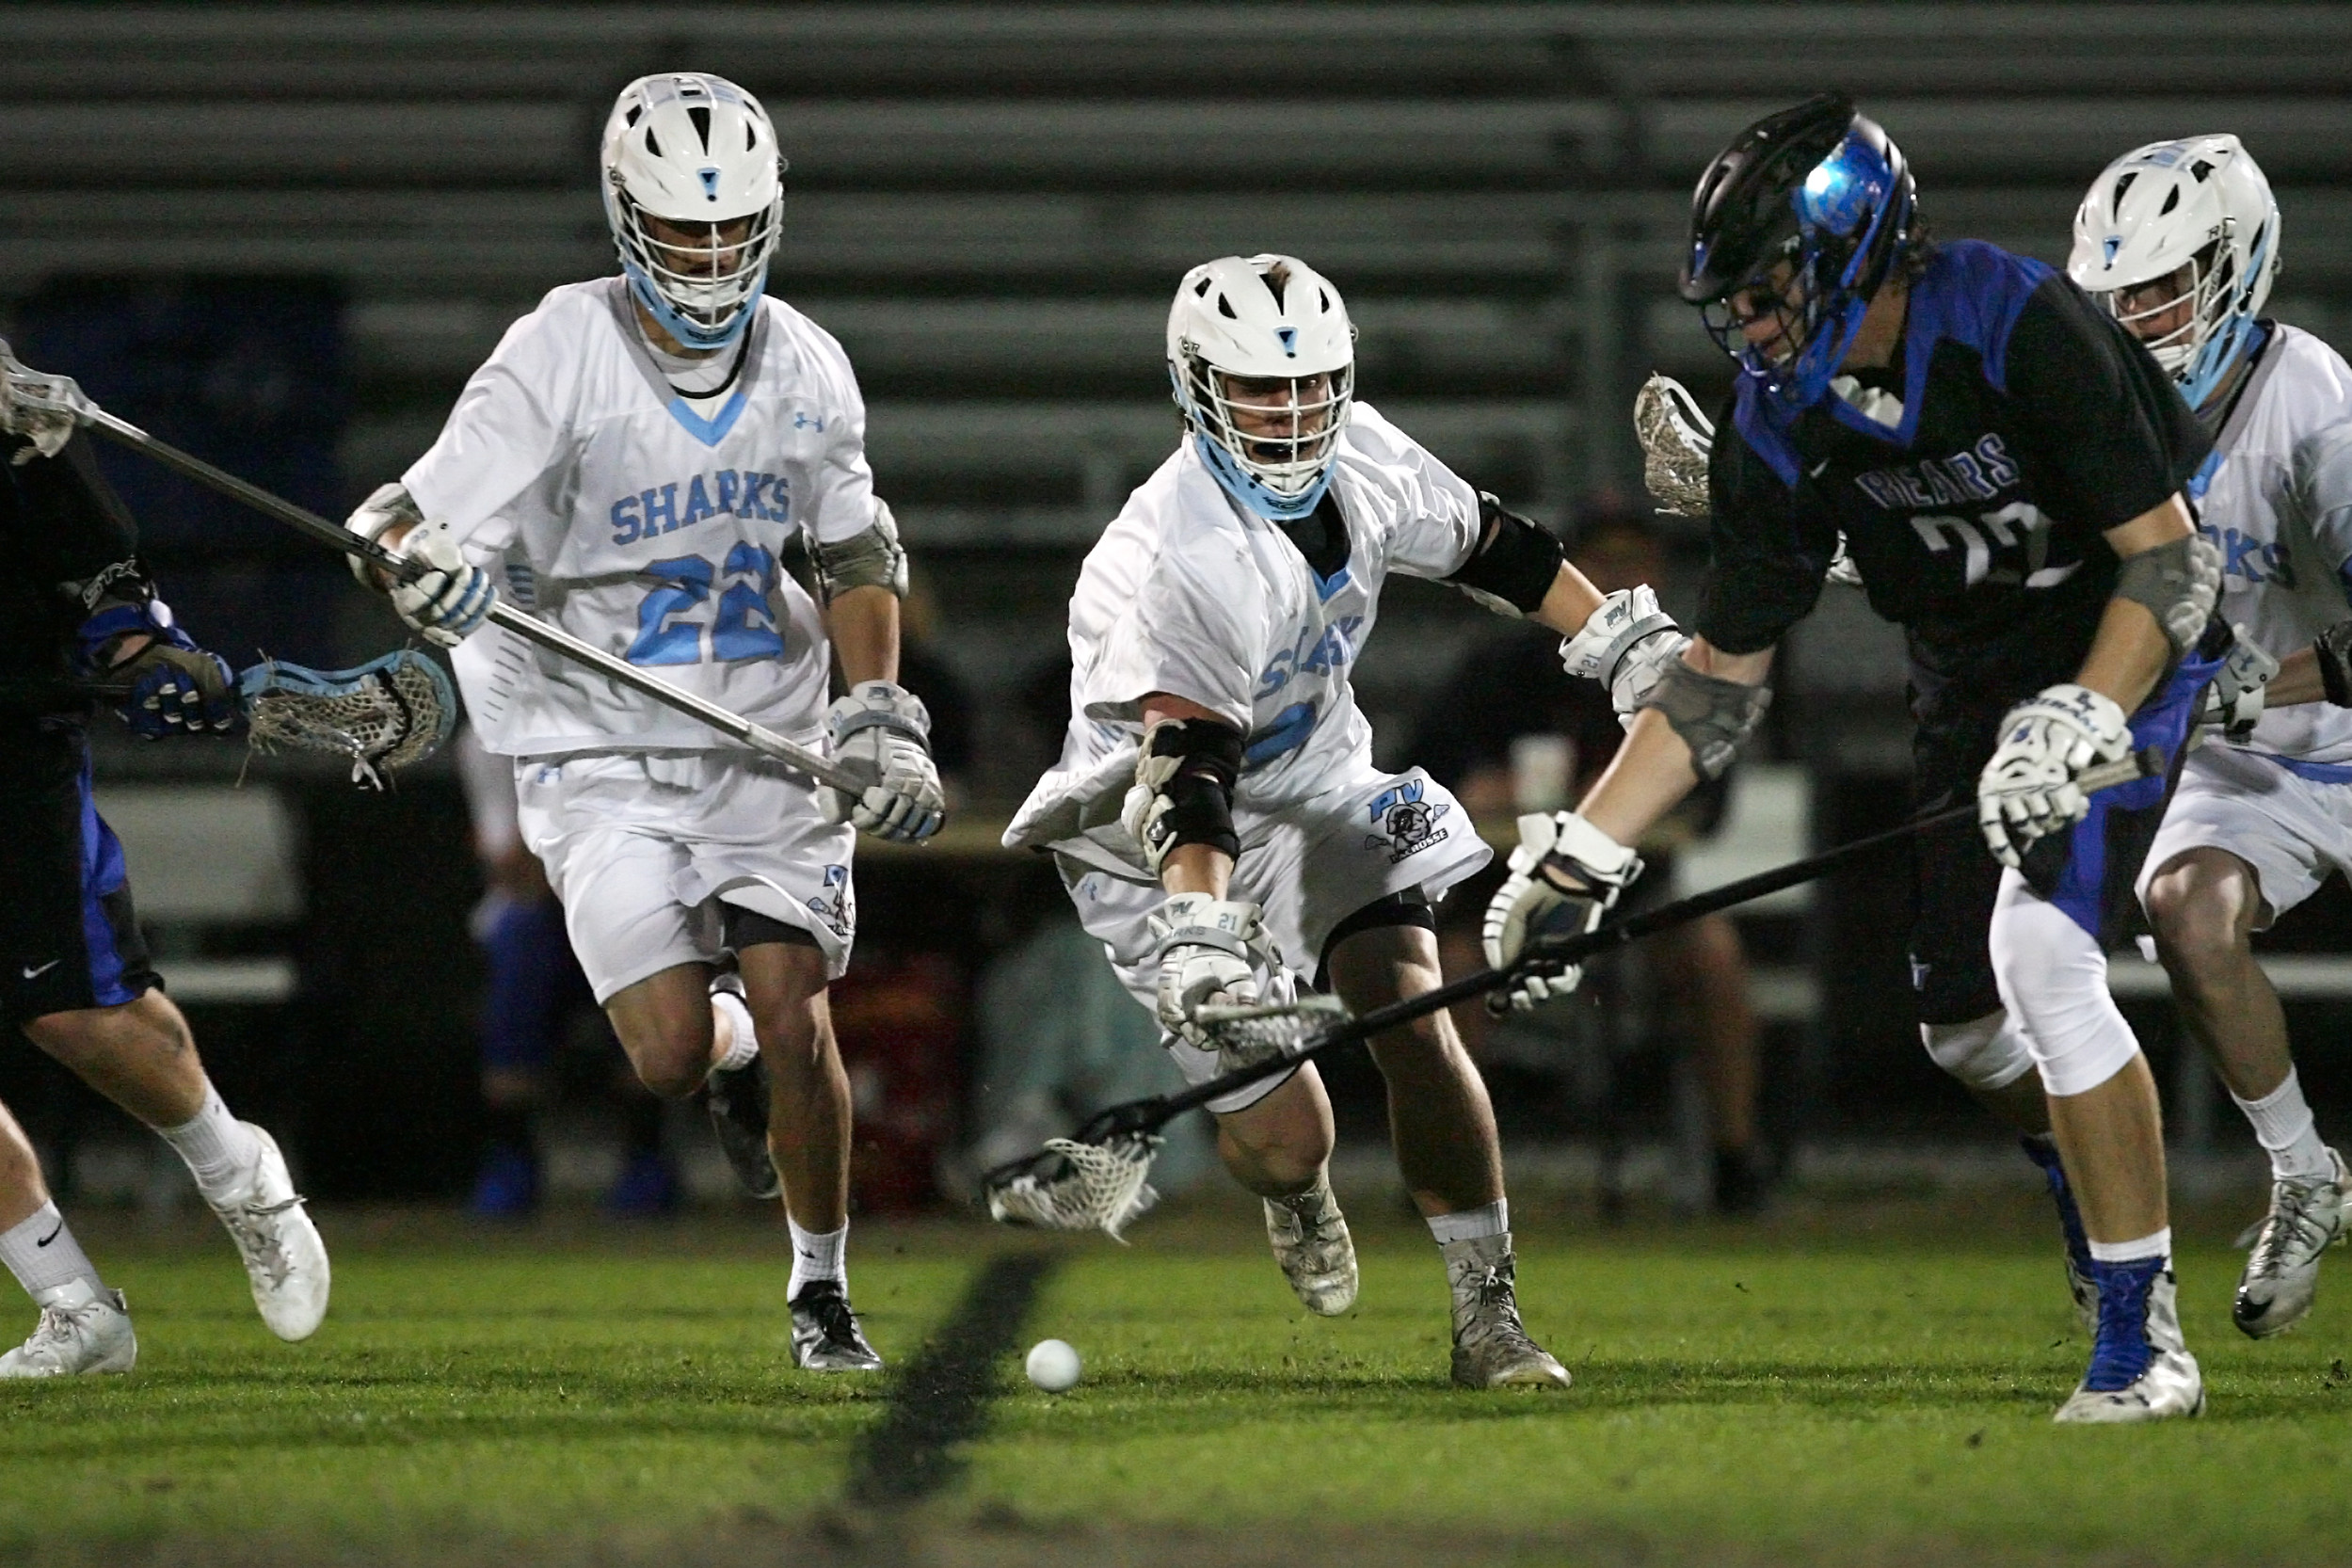 #22 Tommy Zitello and Andrew O'Dare battle for control of the loose ball.